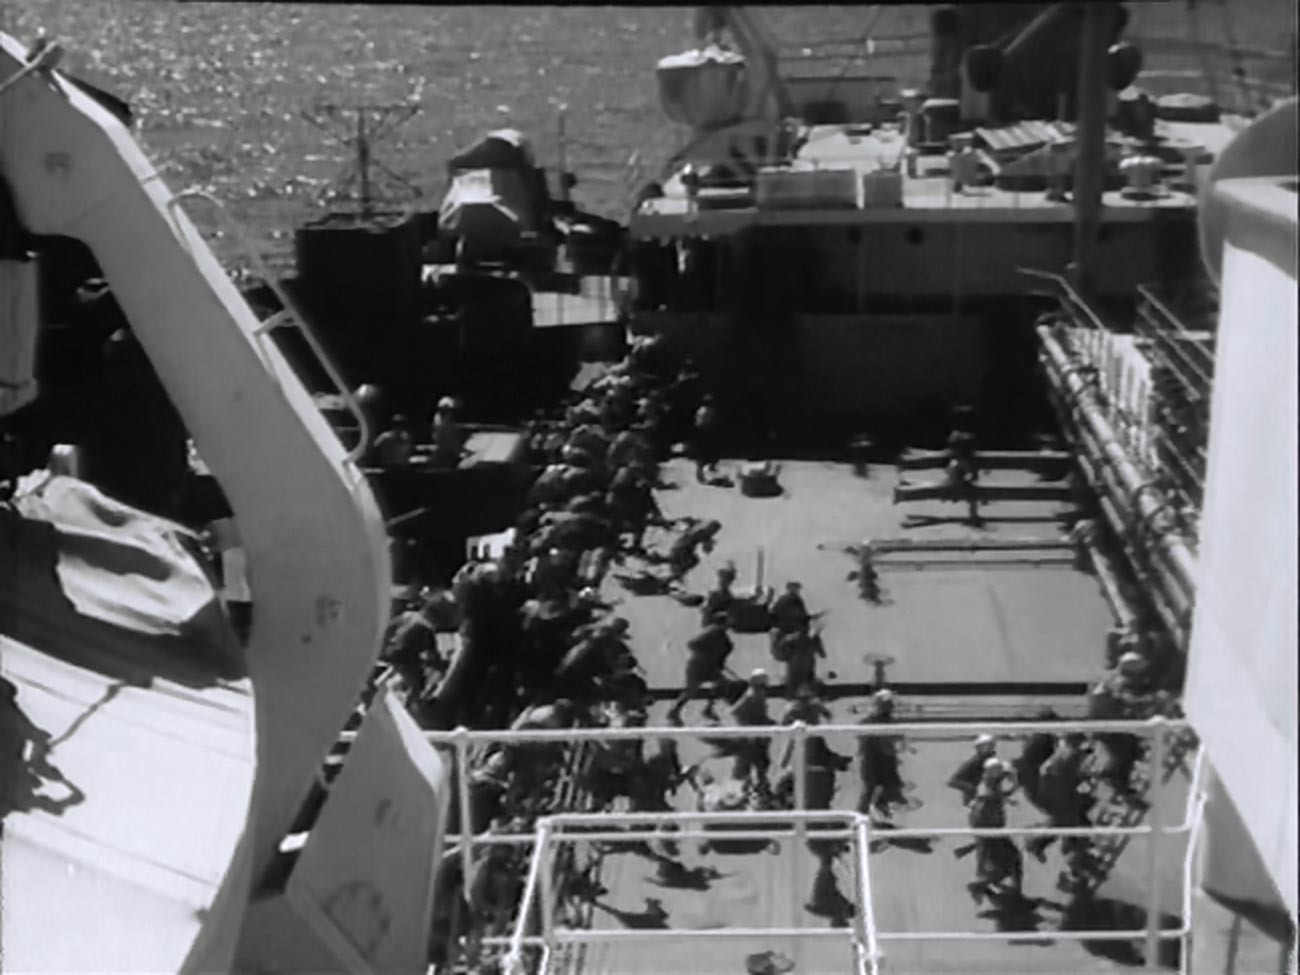 A still from the Soviet movie 'E.A. — Extraordinary Accident', based on real events of the capture of the Soviet tanker 'Tuapse'.